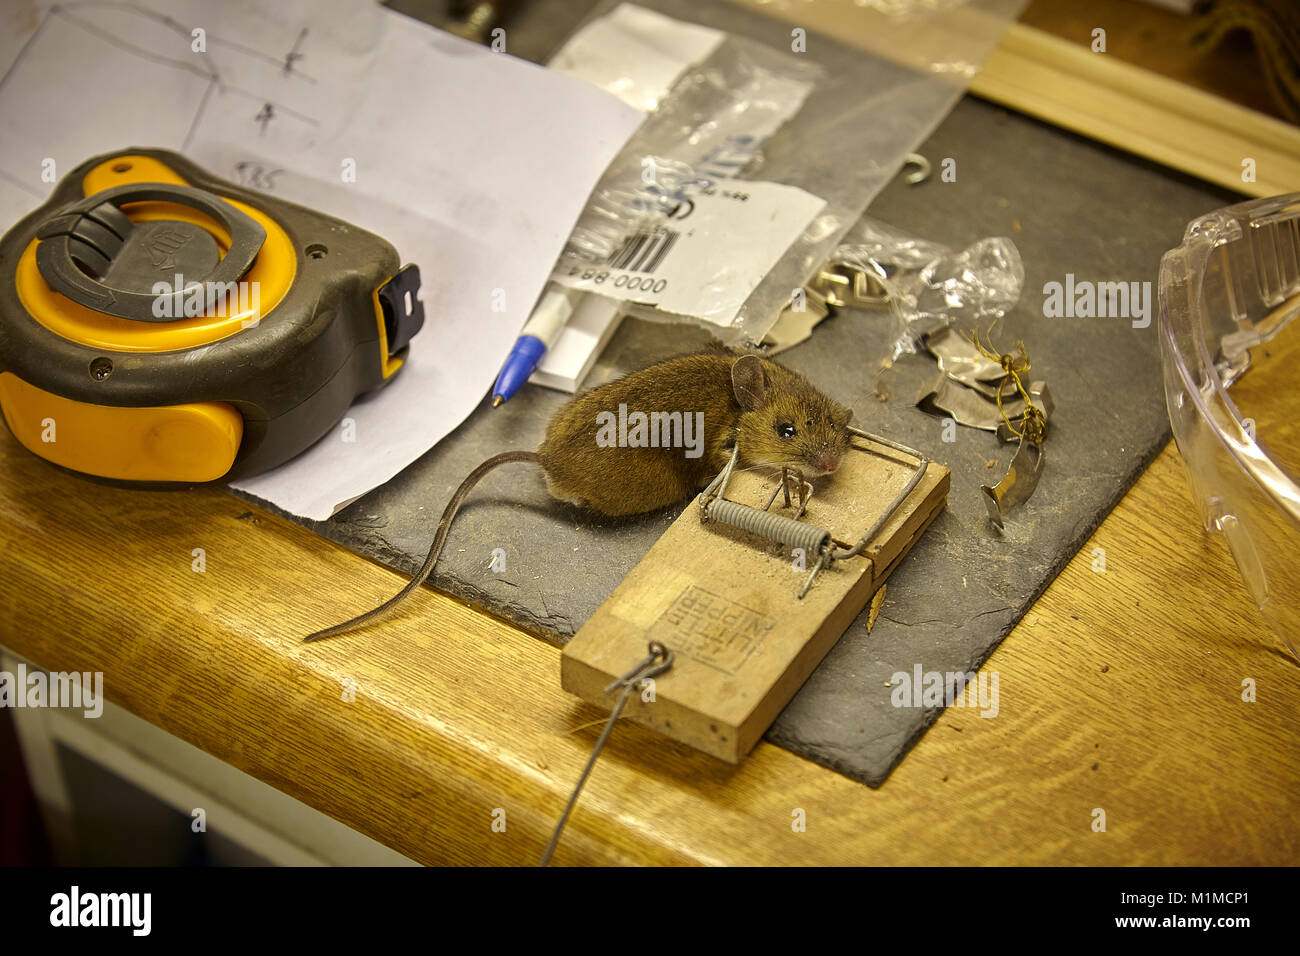 Mouse caught in 'Little Nipper' mouse trap in woodworking outbuilding in Nidderdale, North Yorkshire - Stock Image